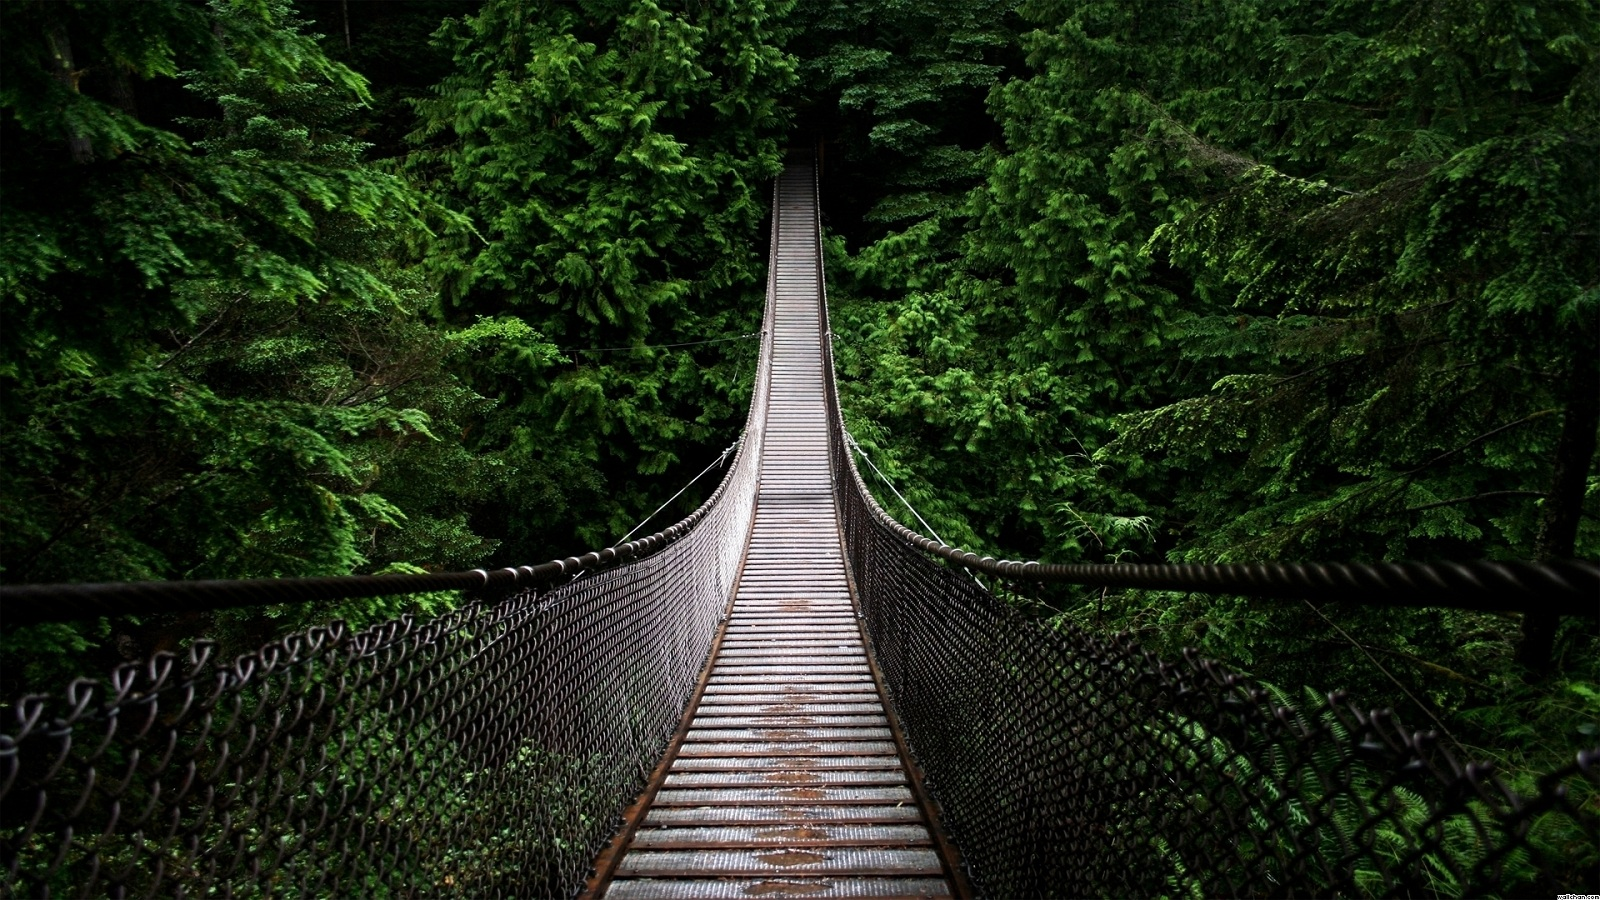 The Most Scariest Picture In The World Scariest bridges, canada